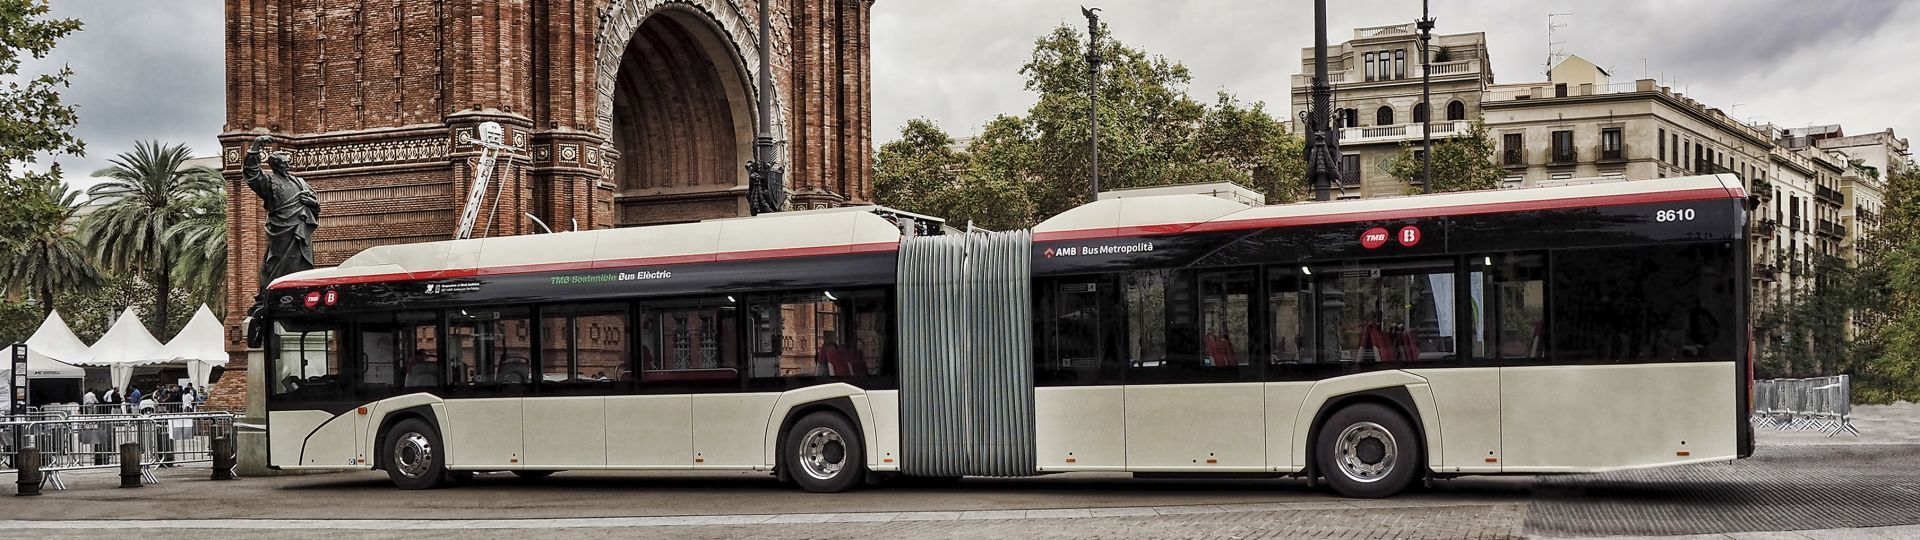 Electric Solaris buses in Barcelona